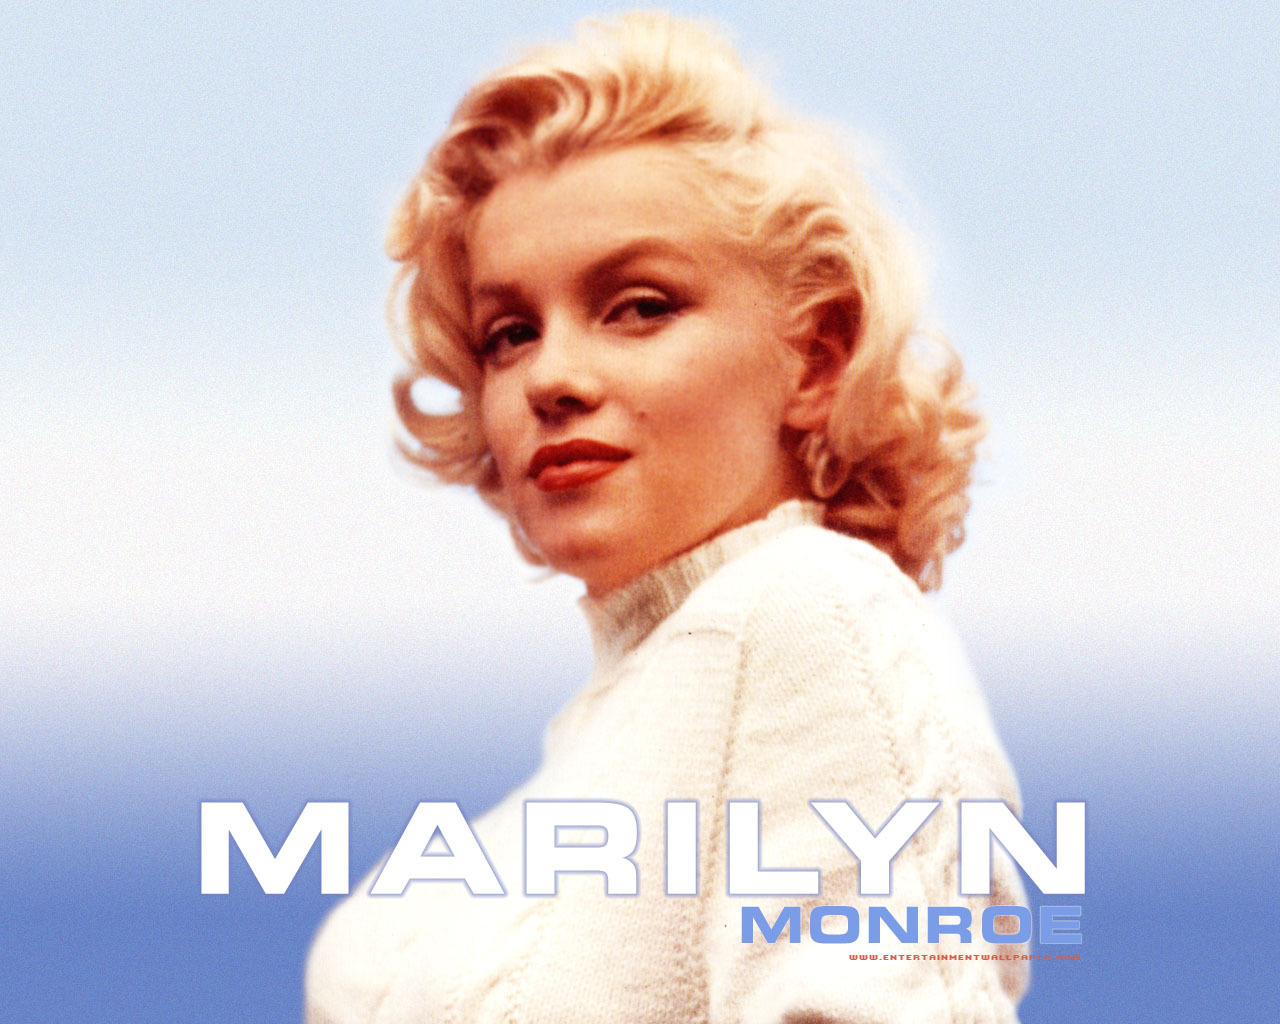 MARILYN MONROE: Timeline | The Astrology Place